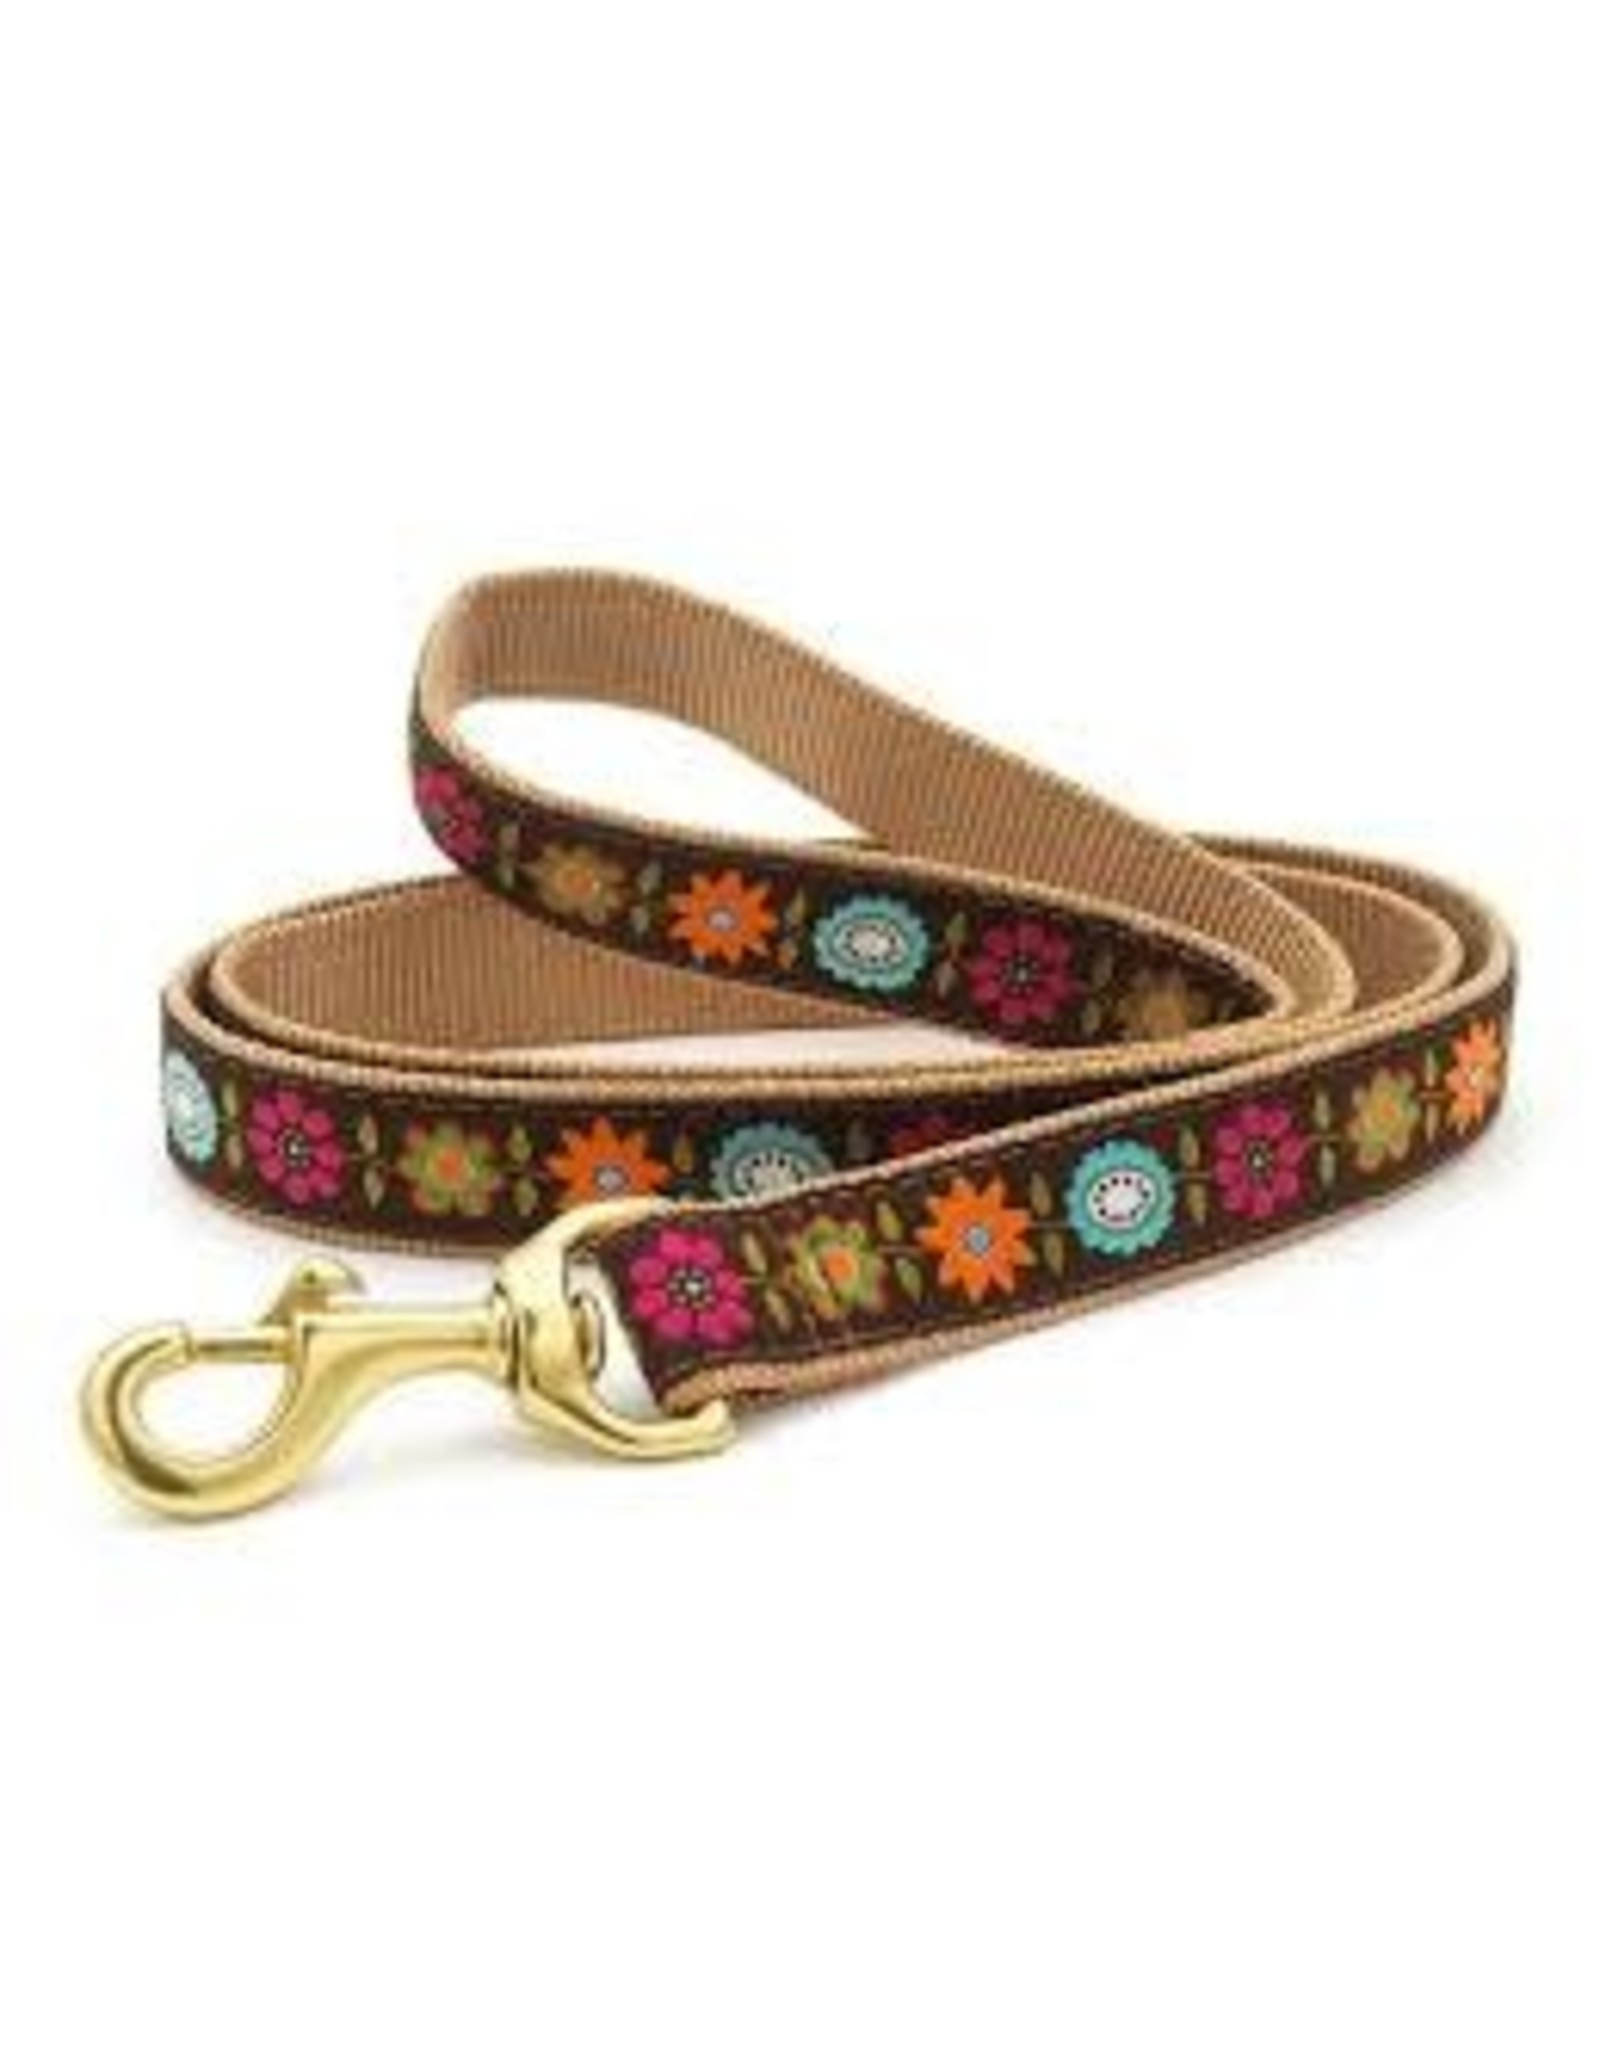 UP COUNTRY UP COUNTRY BELLA FLORAL DOG HARNESS S